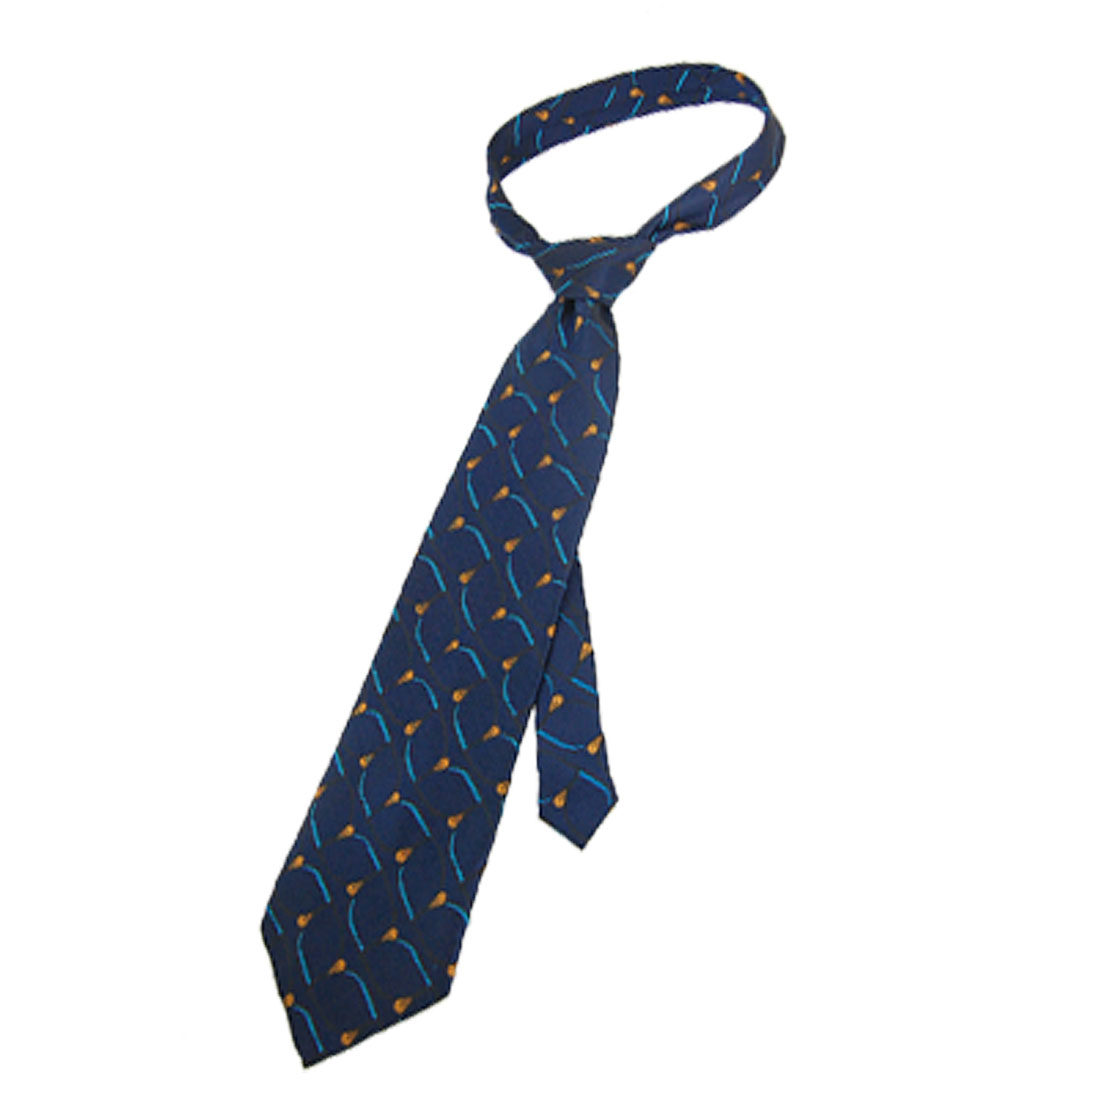 "Man Flower Leaf Pattern 56.7"" Length Self Tie Necktie Navy Blue"